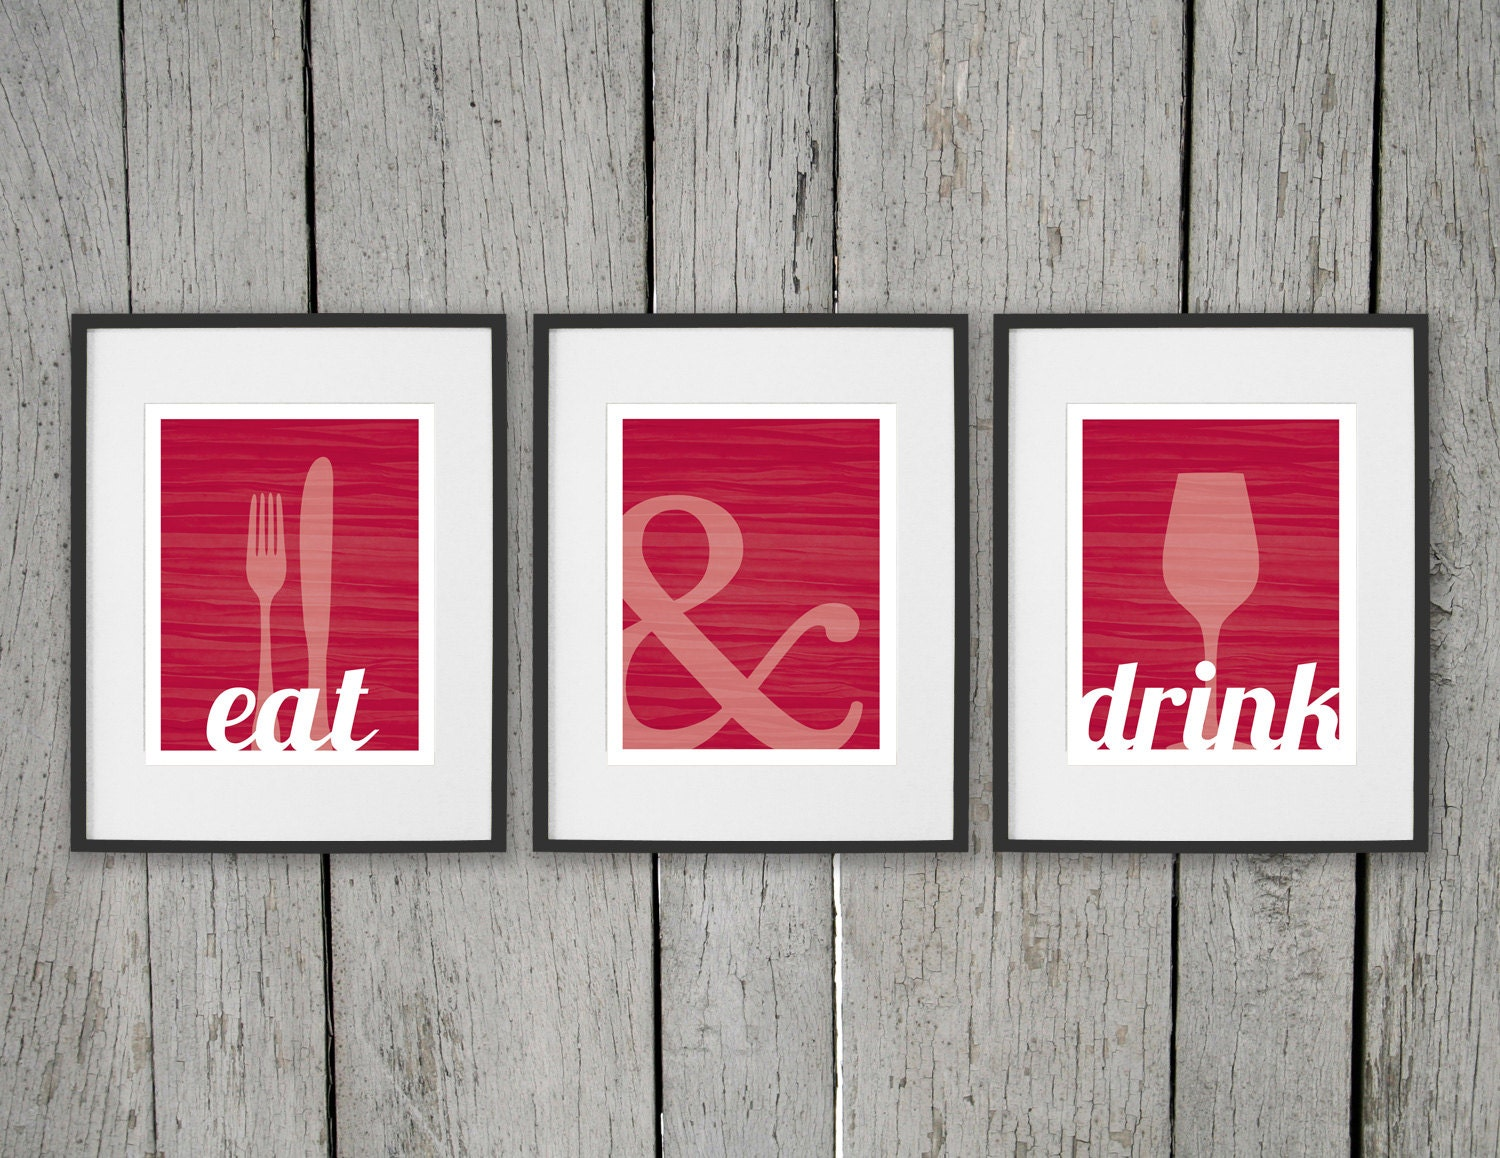 Prints For Wall Decor : Dining room prints wall art eat drink fork by daphnegraphics